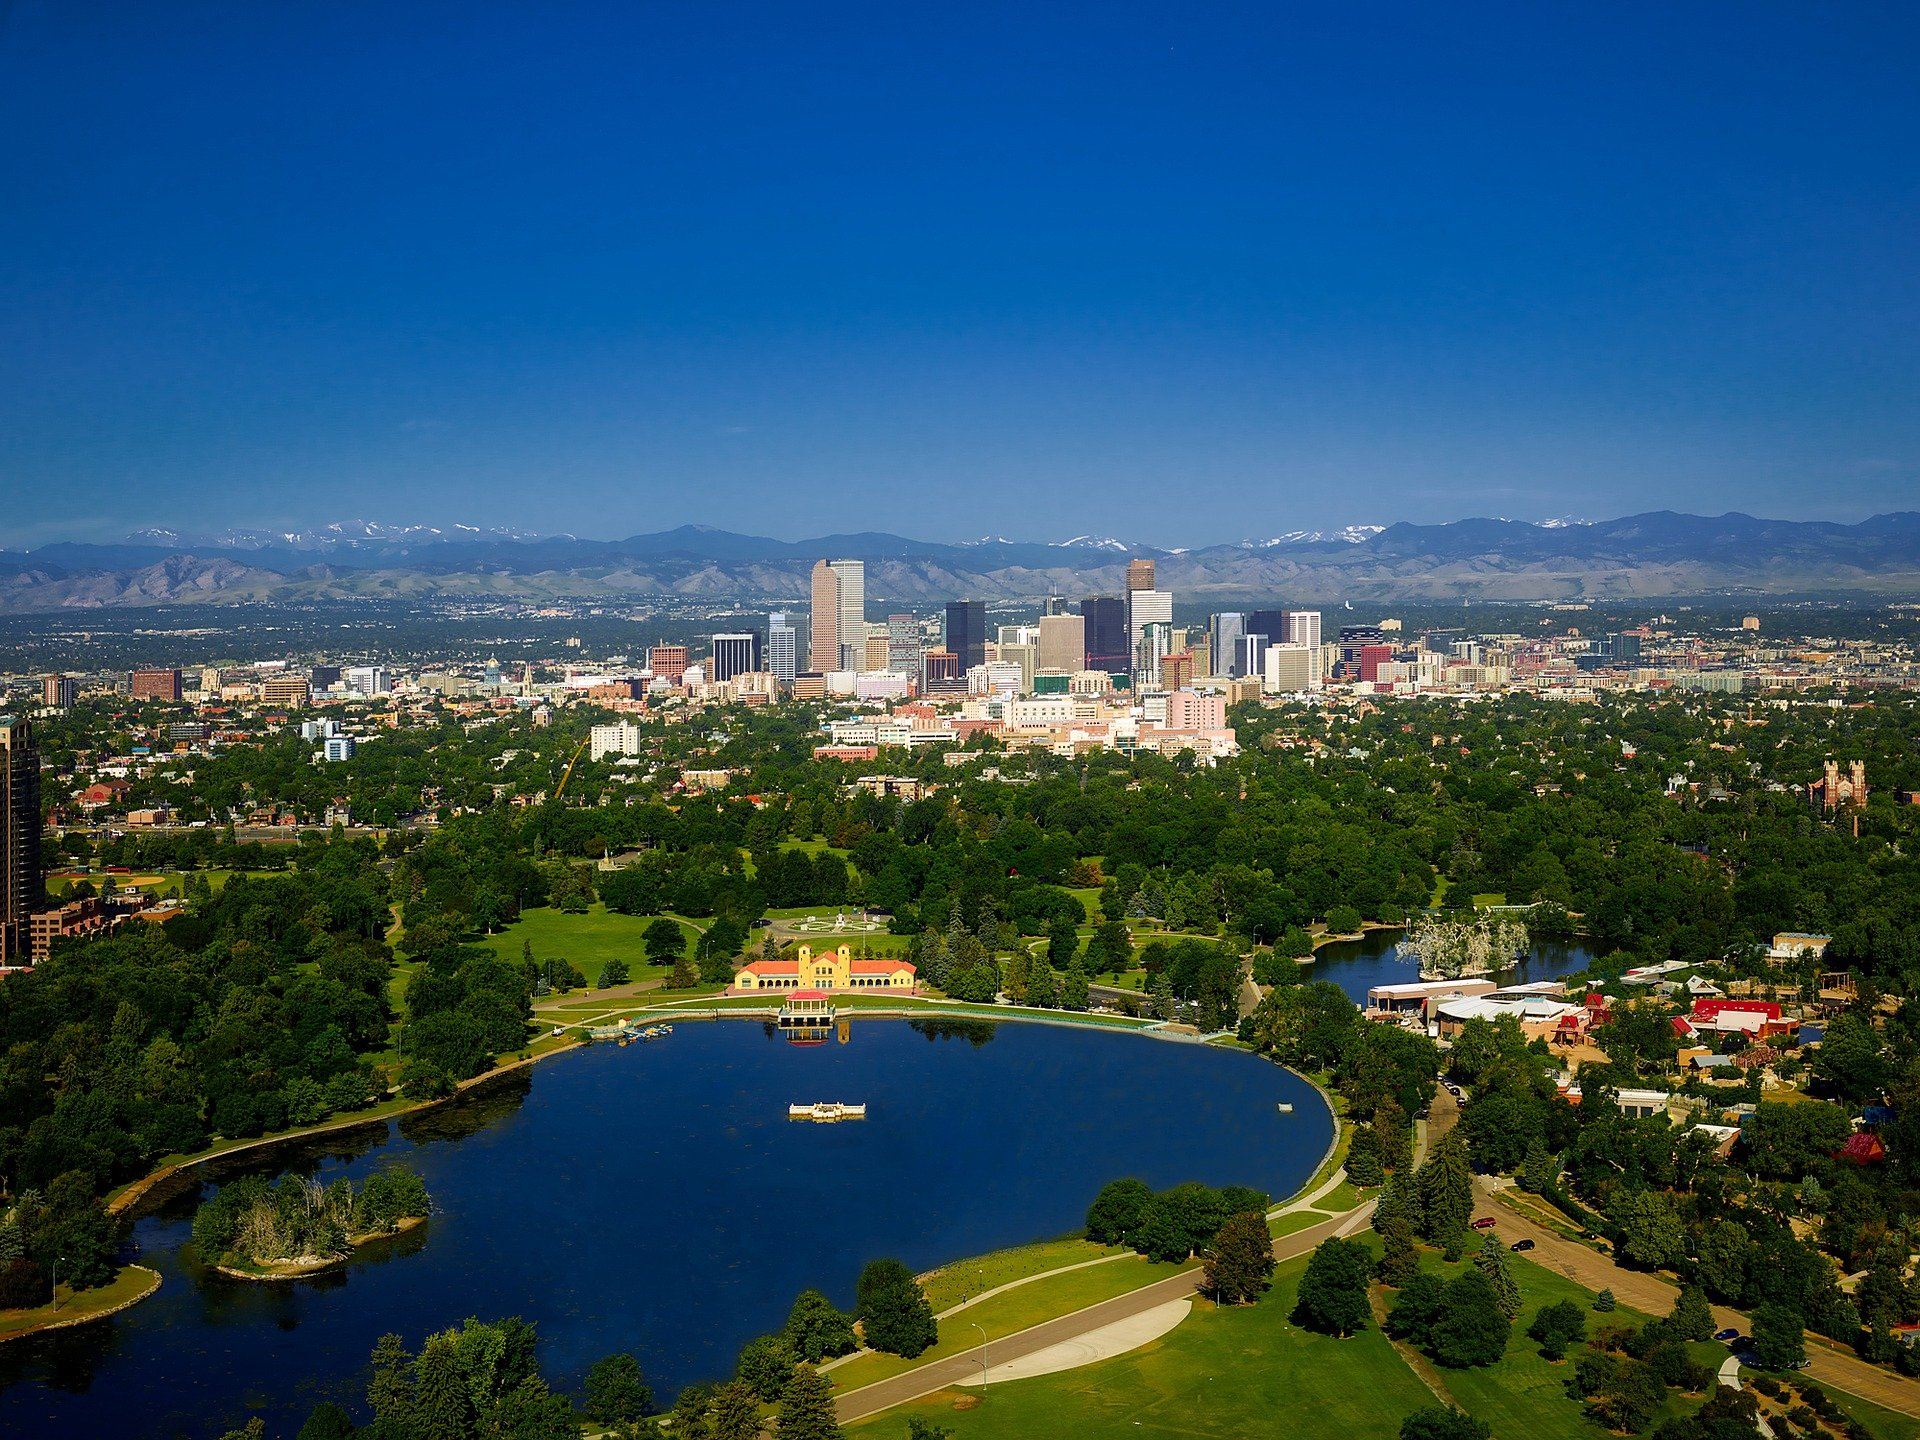 Finding Your Downtown Denver Car Rental Locations While On Vacation